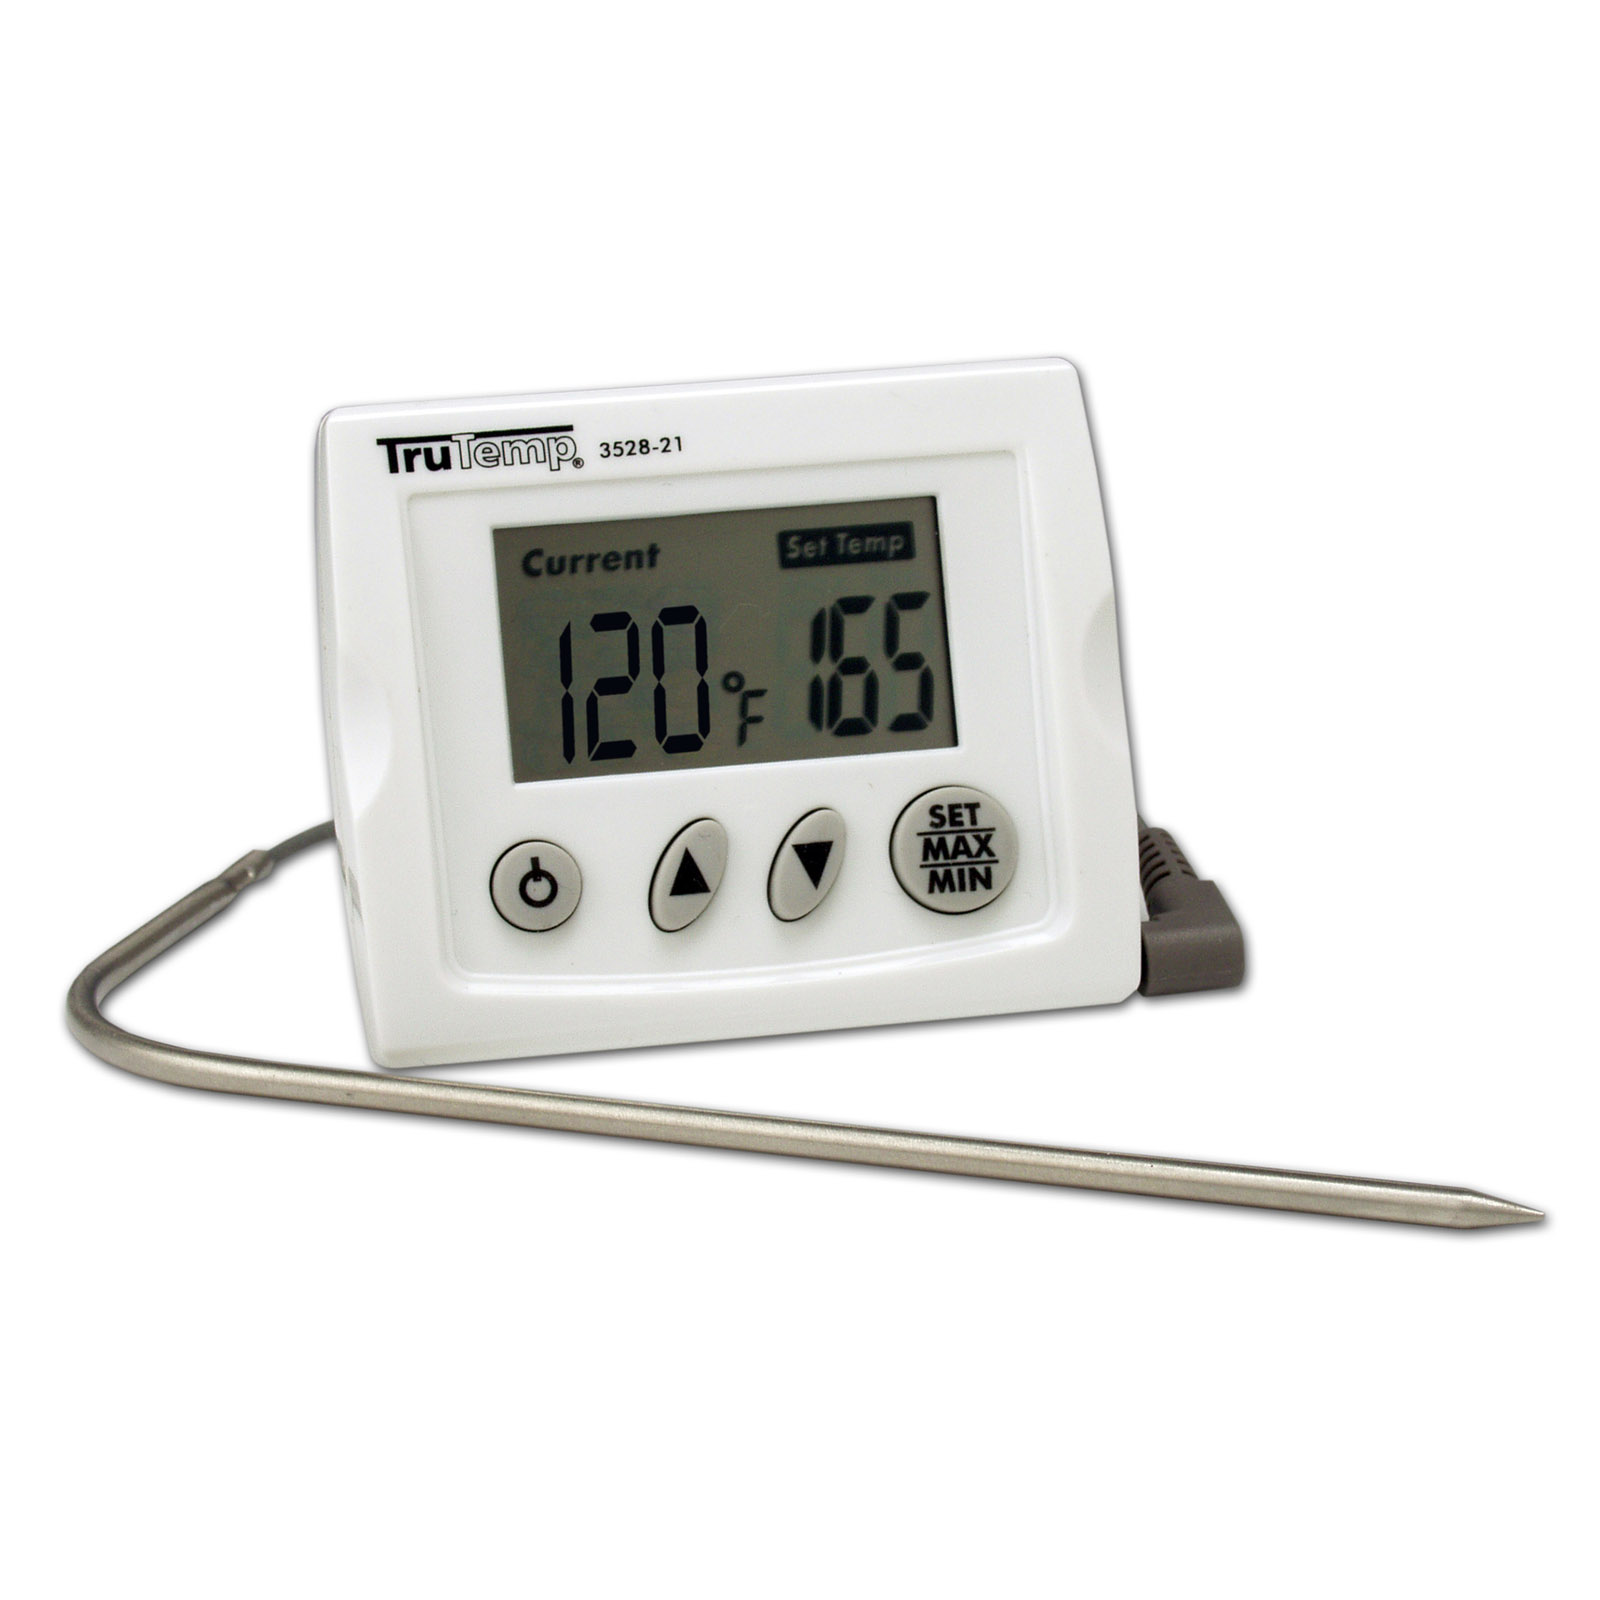 Taylor Precision 3518N thermometer, misc